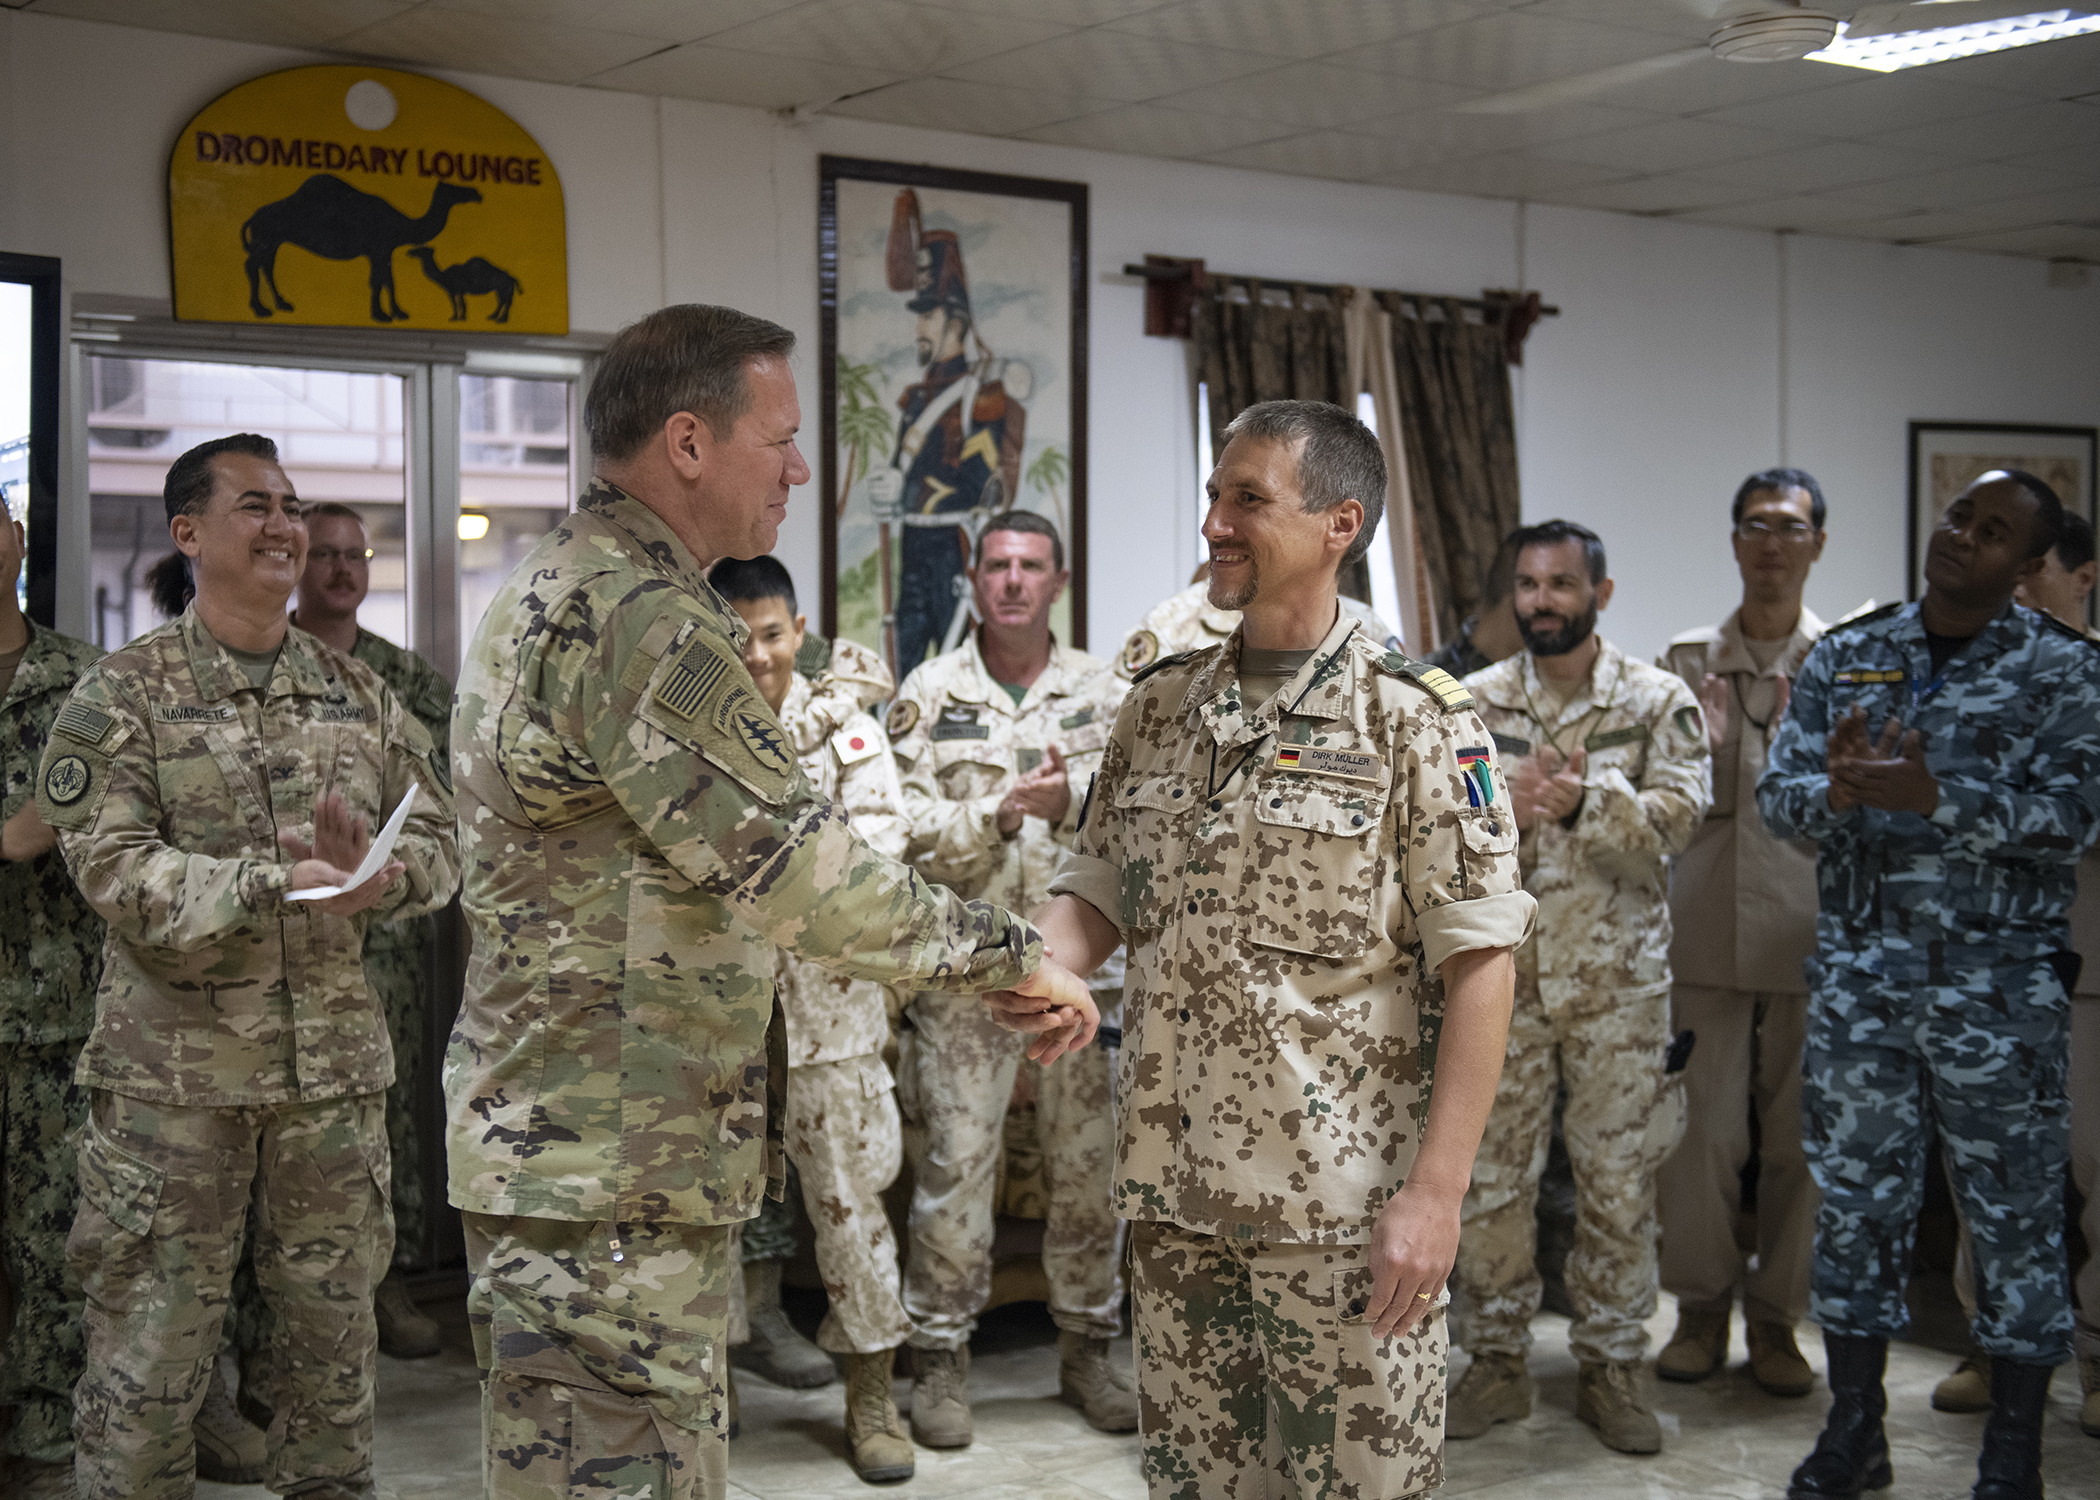 U.S. Army Maj. Gen. James D. Craig, left, commanding general, Combined Joint Task Force-Horn of Africa, presents a coin to German Navy Cmdr. Dirk Muller, German detachment commander for the European Union Naval Force ATALANTA, the   European Union's integrated approach to combat piracy and armed robbery at sea off the Horn of Africa, during a cultural exchange event at Camp Lemonnier, Djibouti, Feb. 27, 2019. Multinational military partners affiliated with Camp Lemonnier hold monthly exchange events to strengthen alliances and attract new partners in the combined joint military environment. (U.S. Air Force photo by Tech. Sgt. Shawn Nickel)